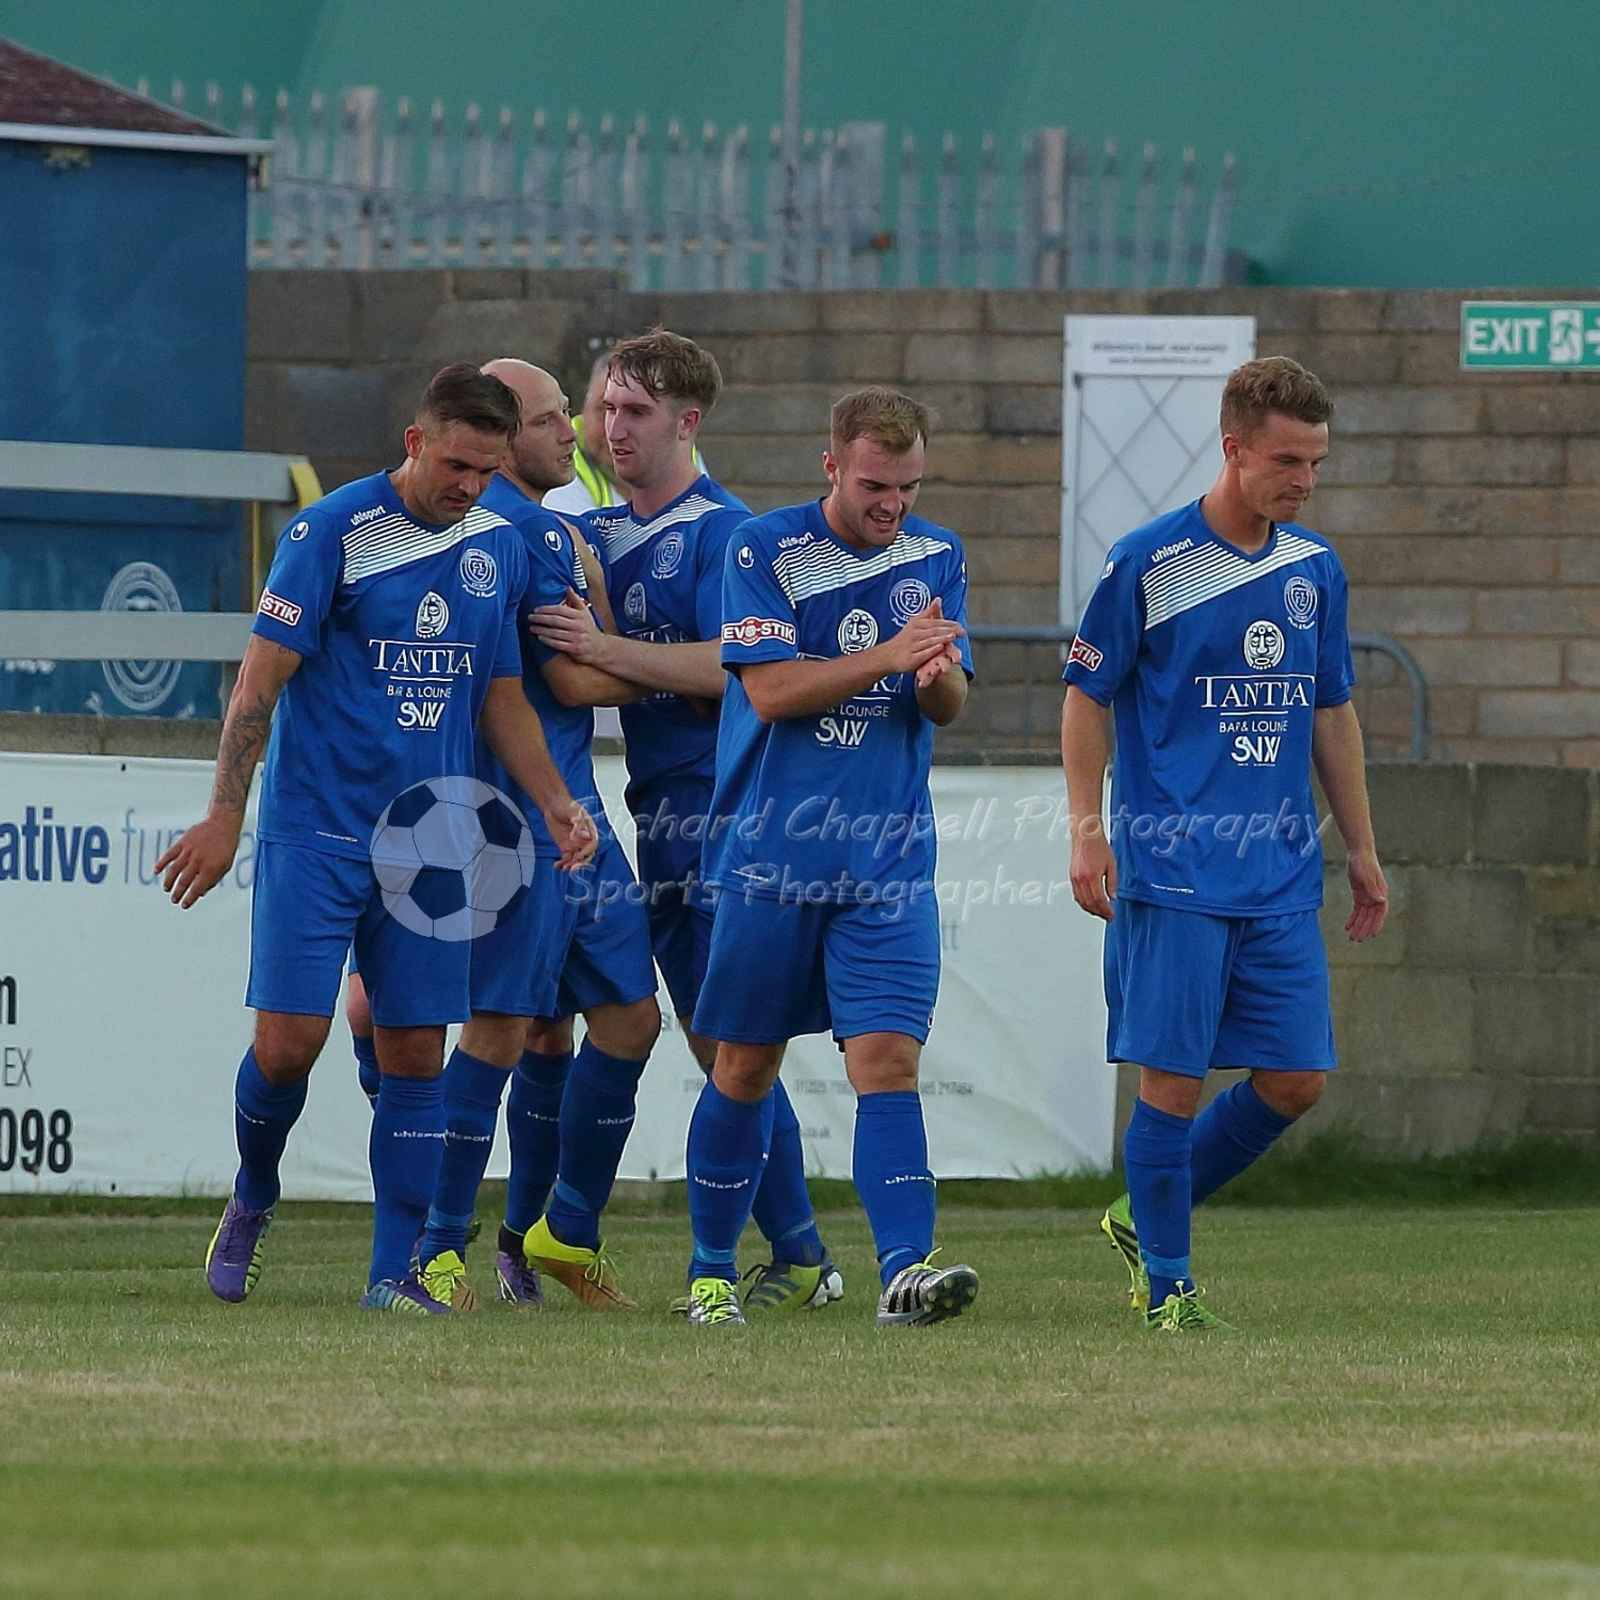 Chippenham Town V Cinderford Town Match Pictures 16th August 2016